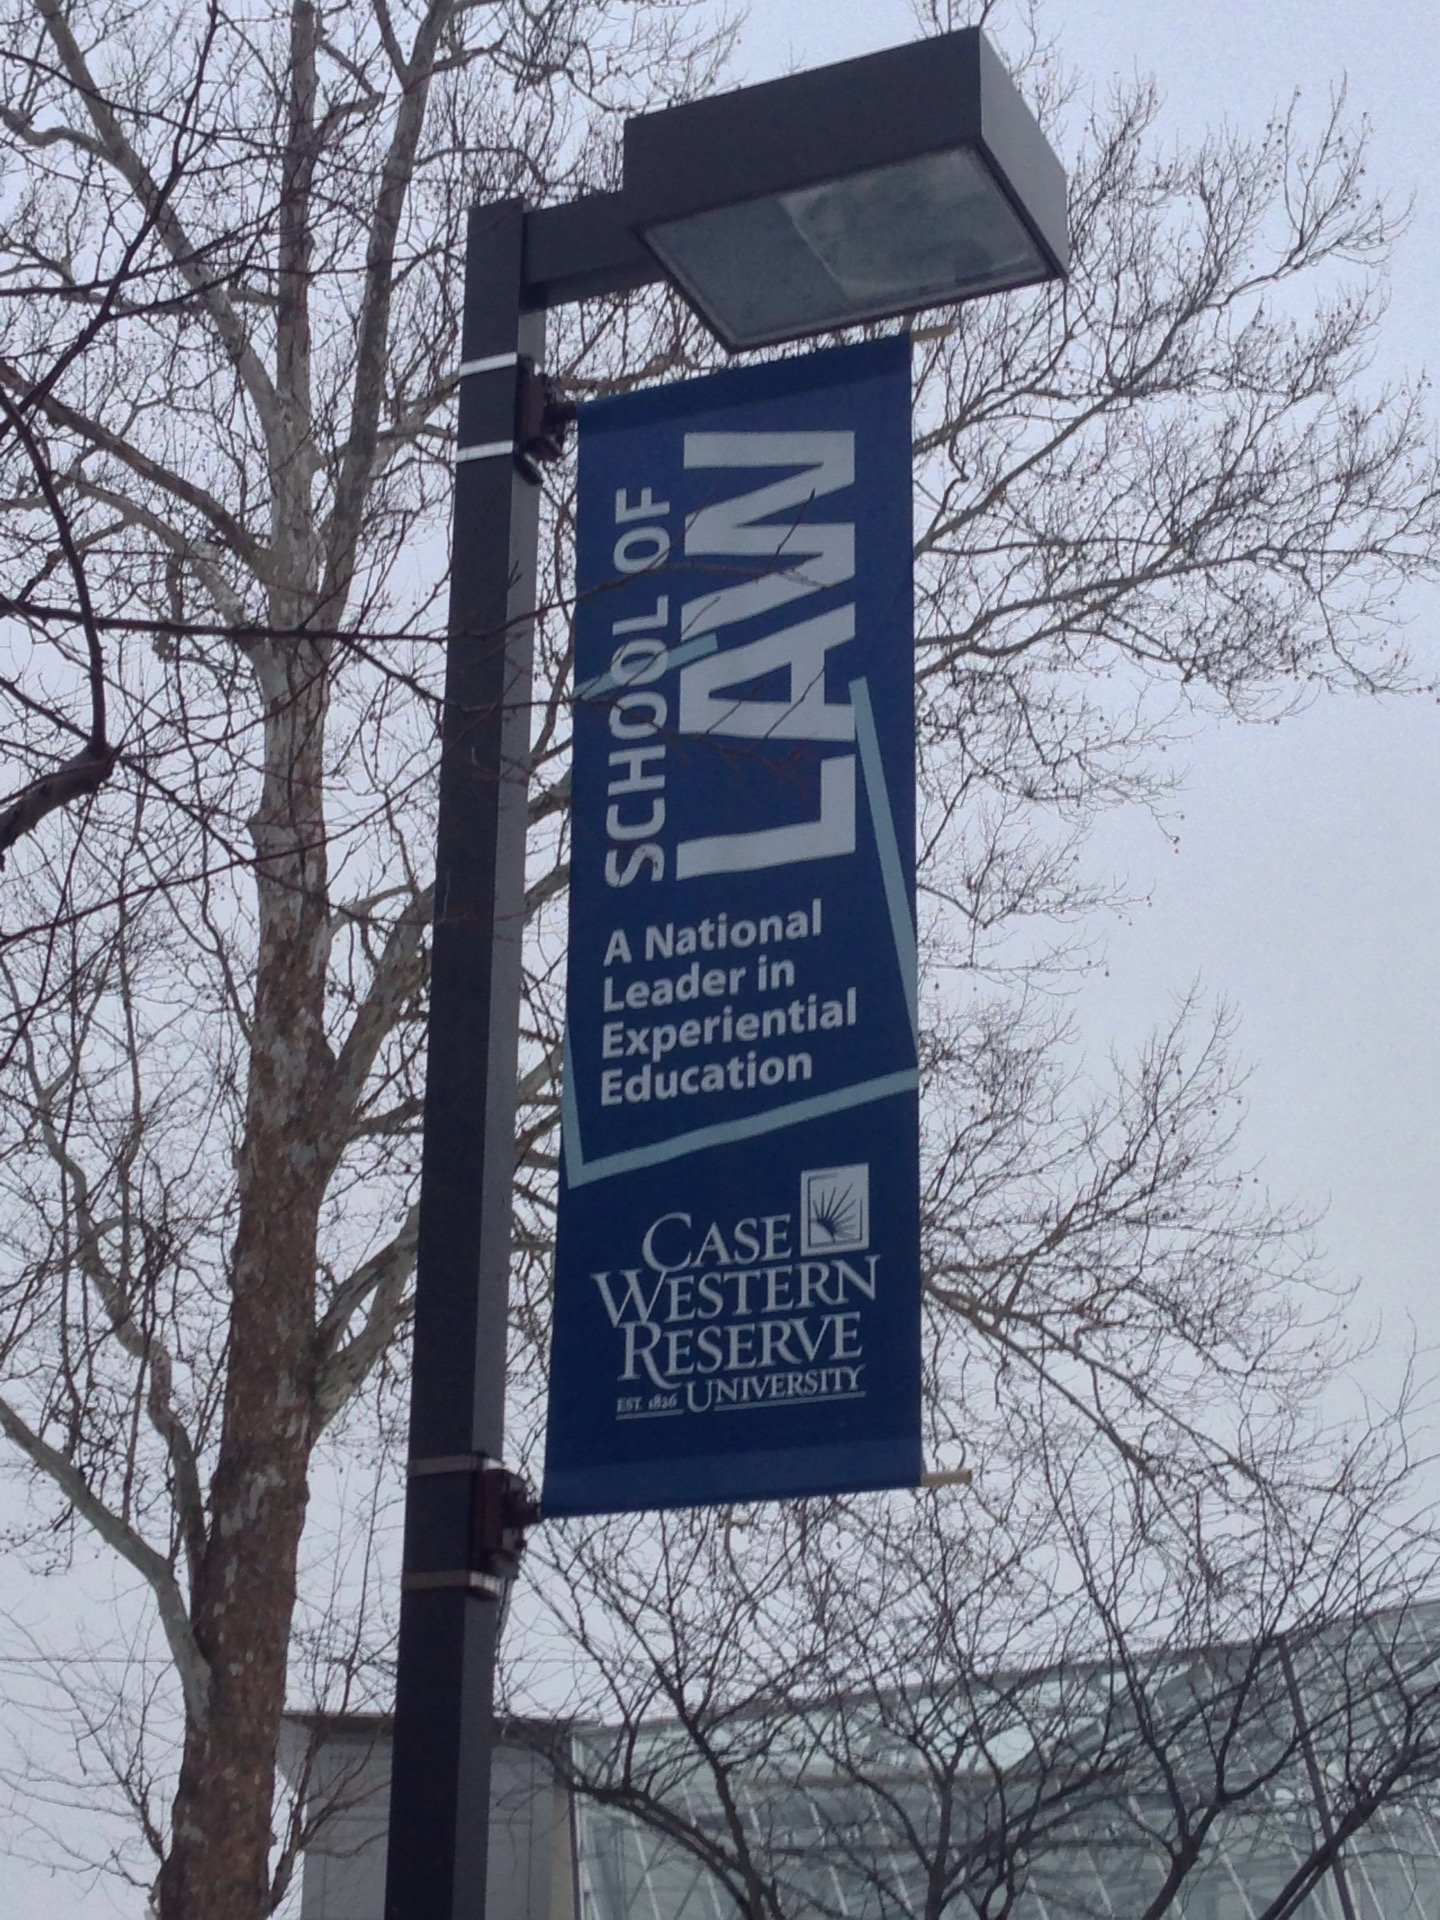 Case Western Reserve University School of Law | 11075 East Blvd, Cleveland, OH, 44106 | +1 (216) 368-2000